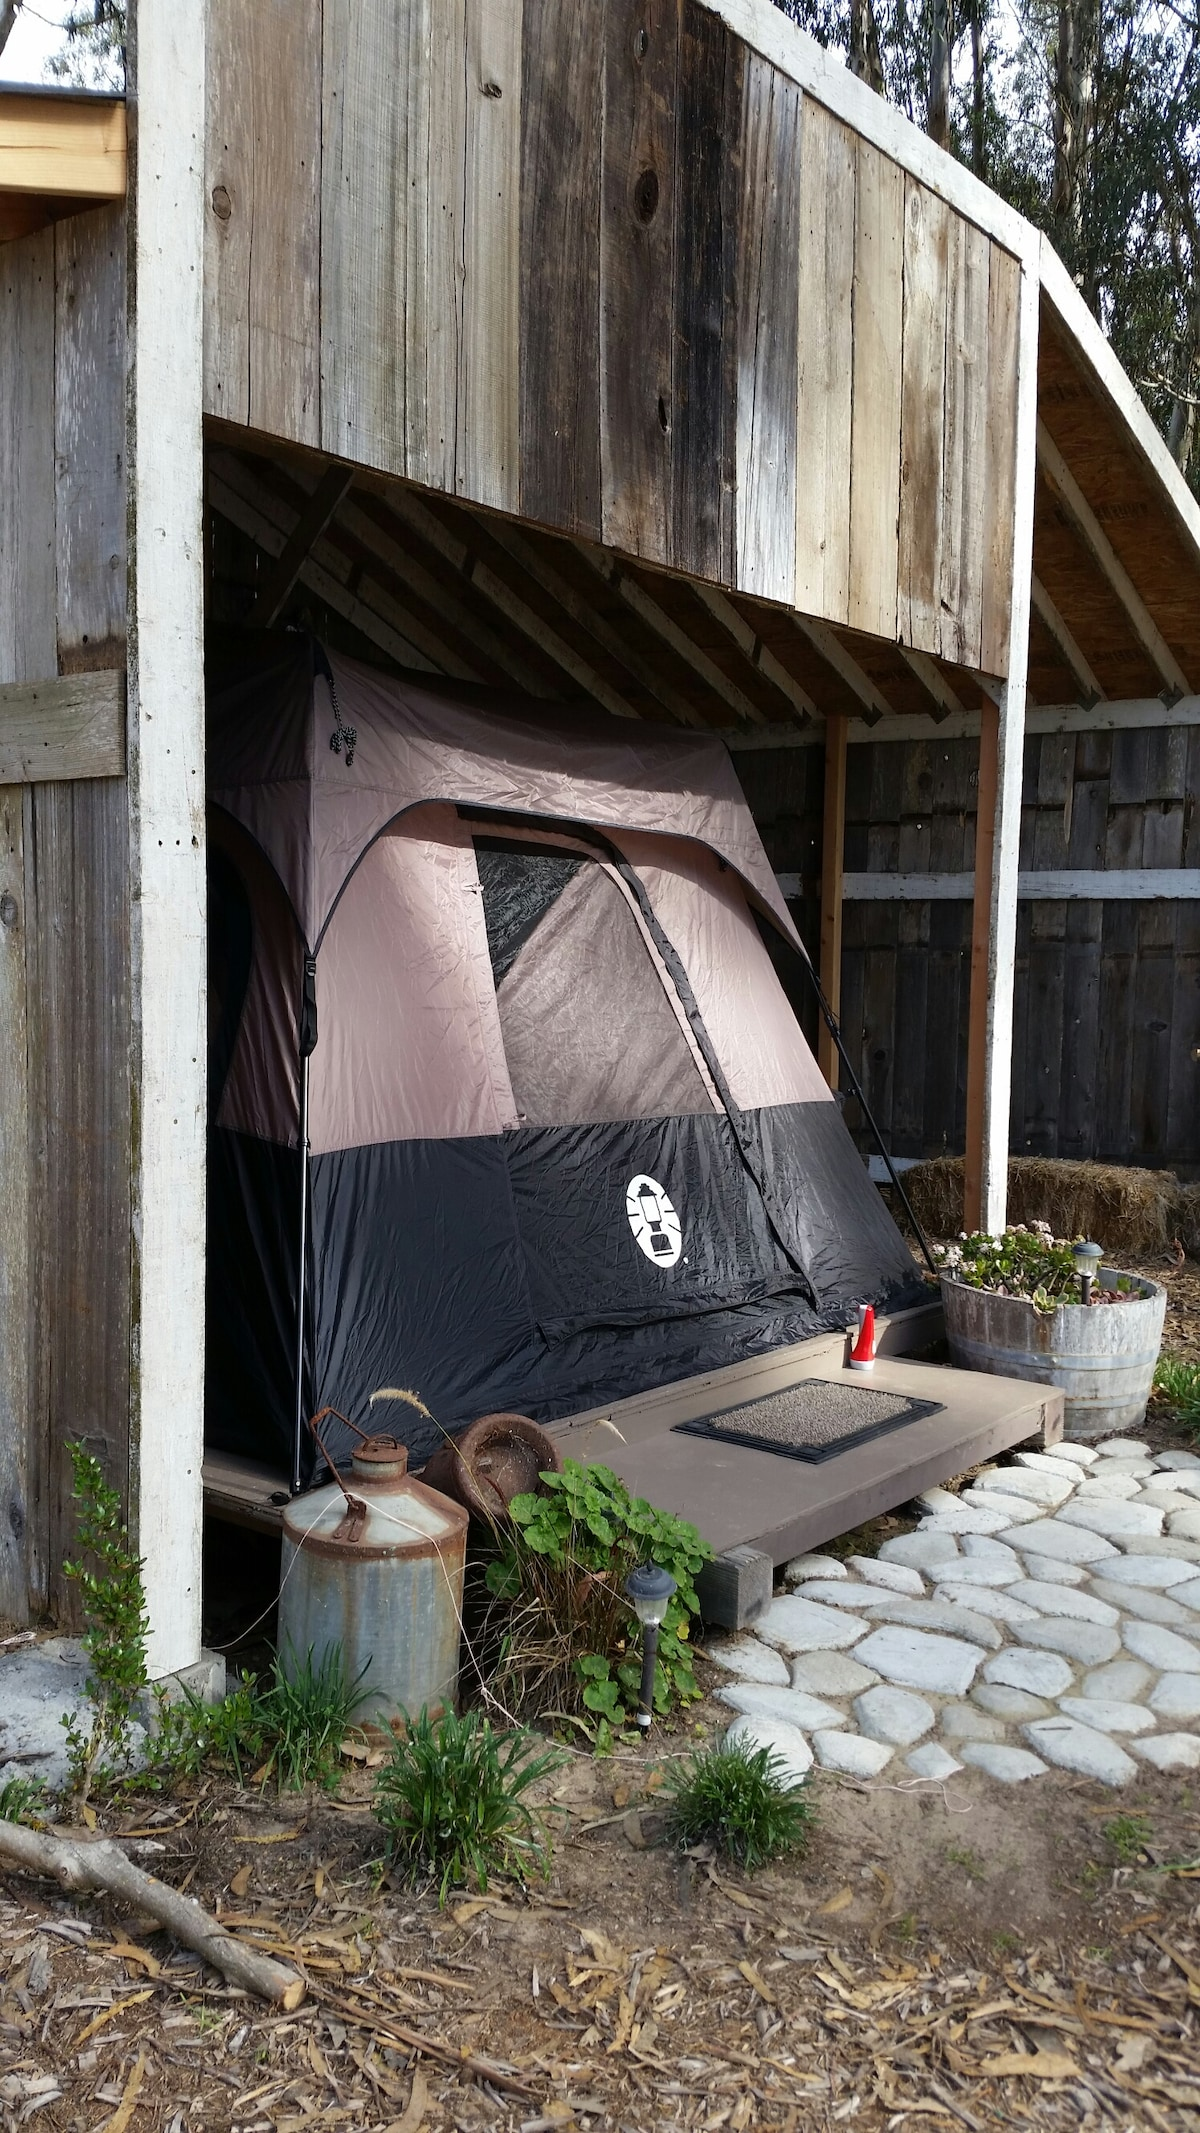 Glamping! 10x14 tent with carpet and a real queen-size bed!